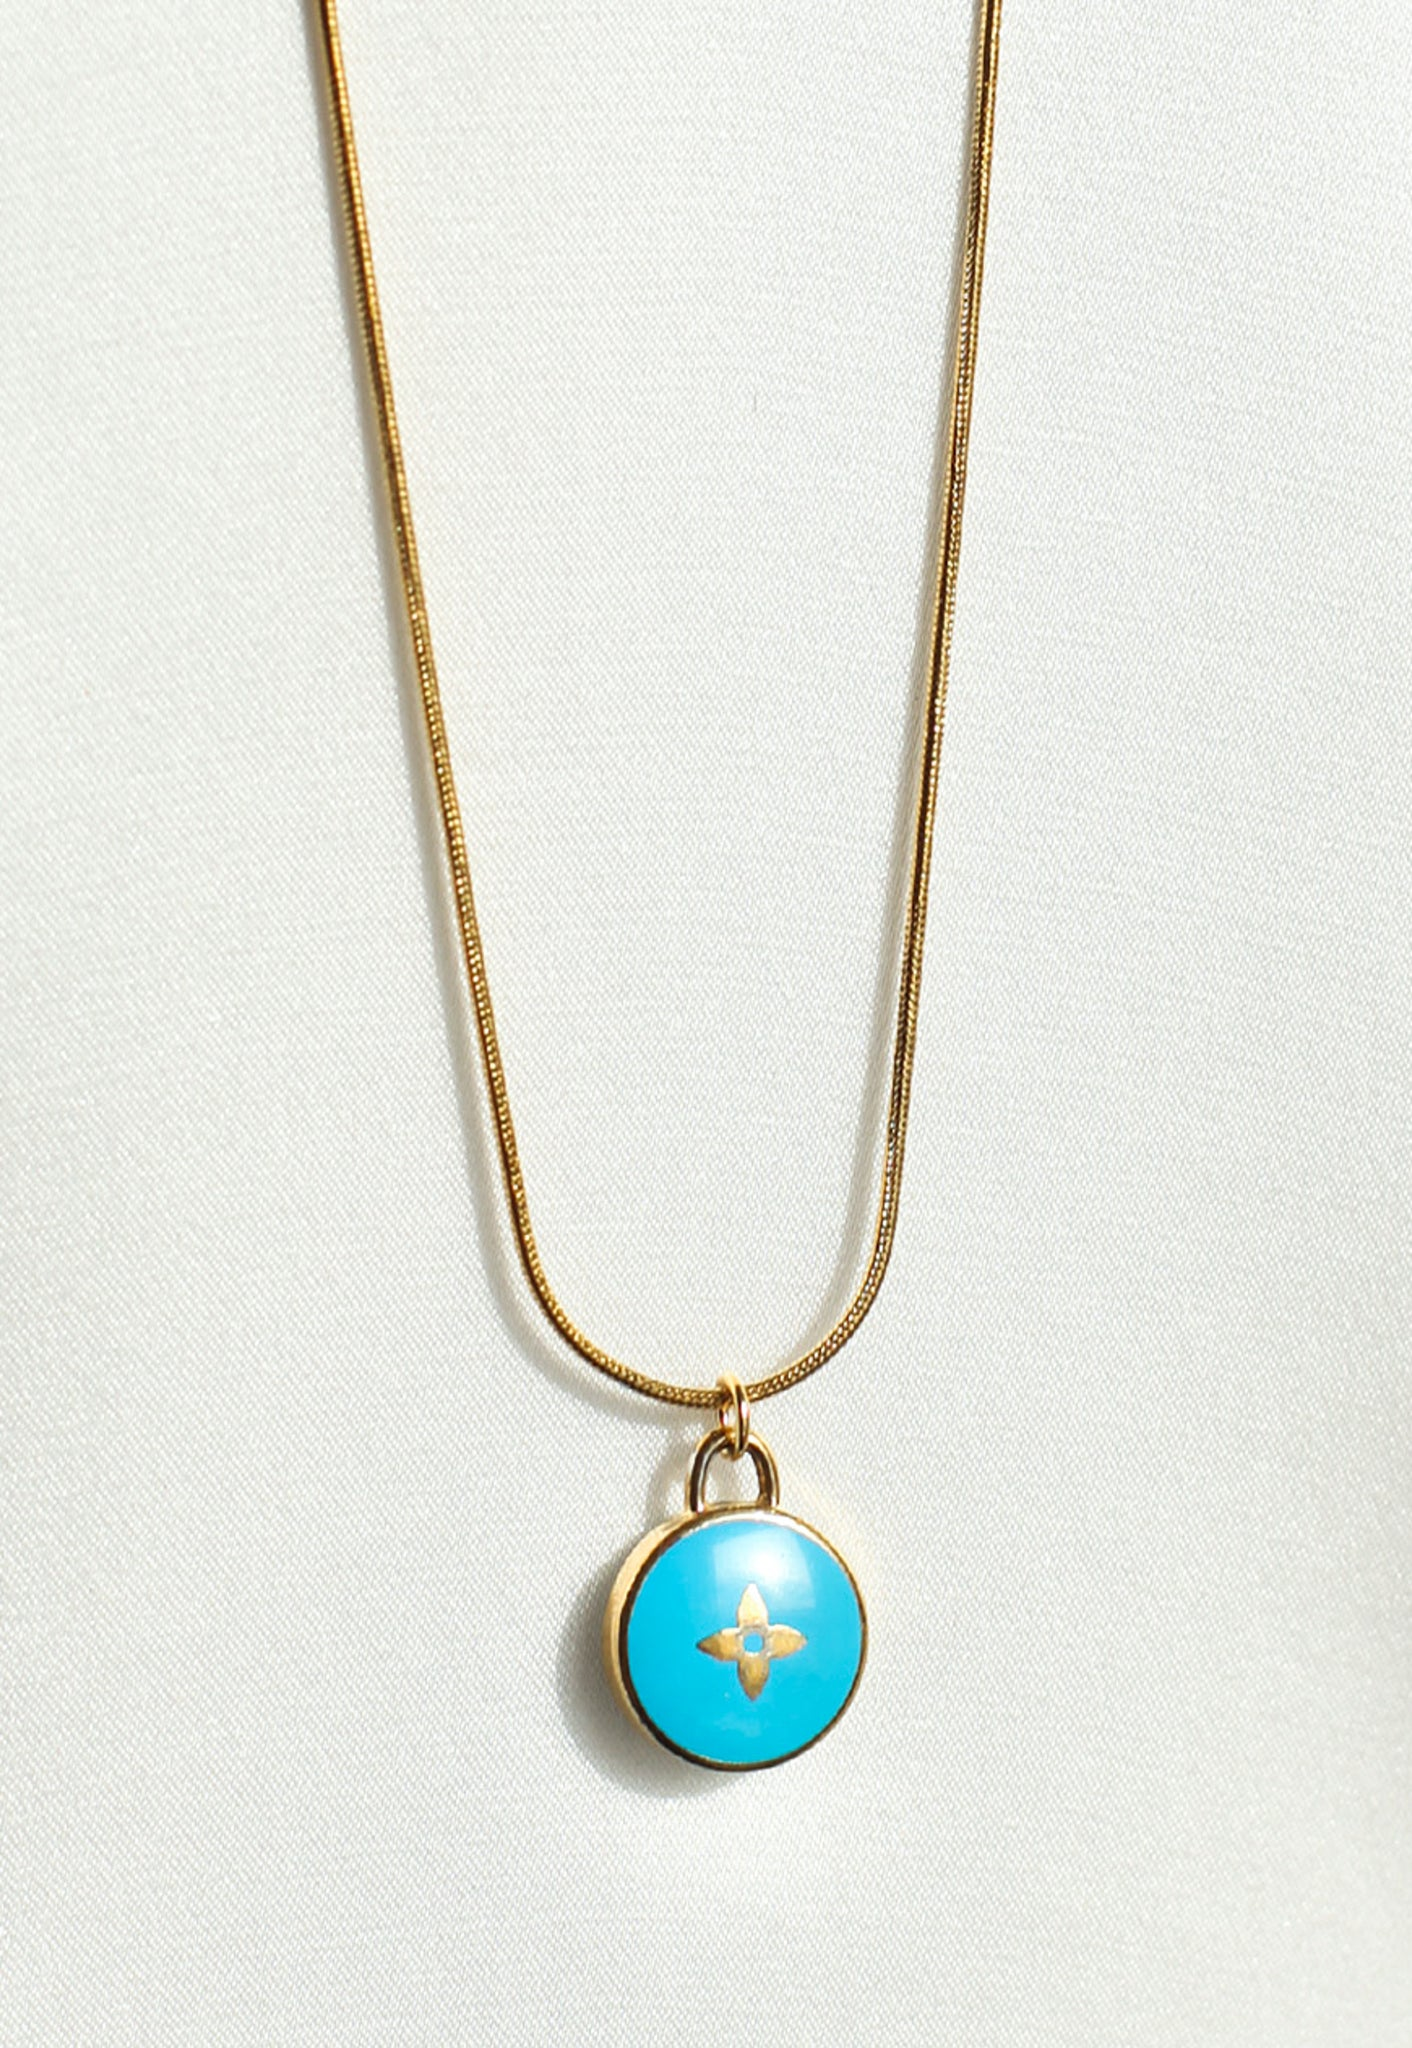 Reworked Louis Vuitton Blue Flower Pendant Necklace